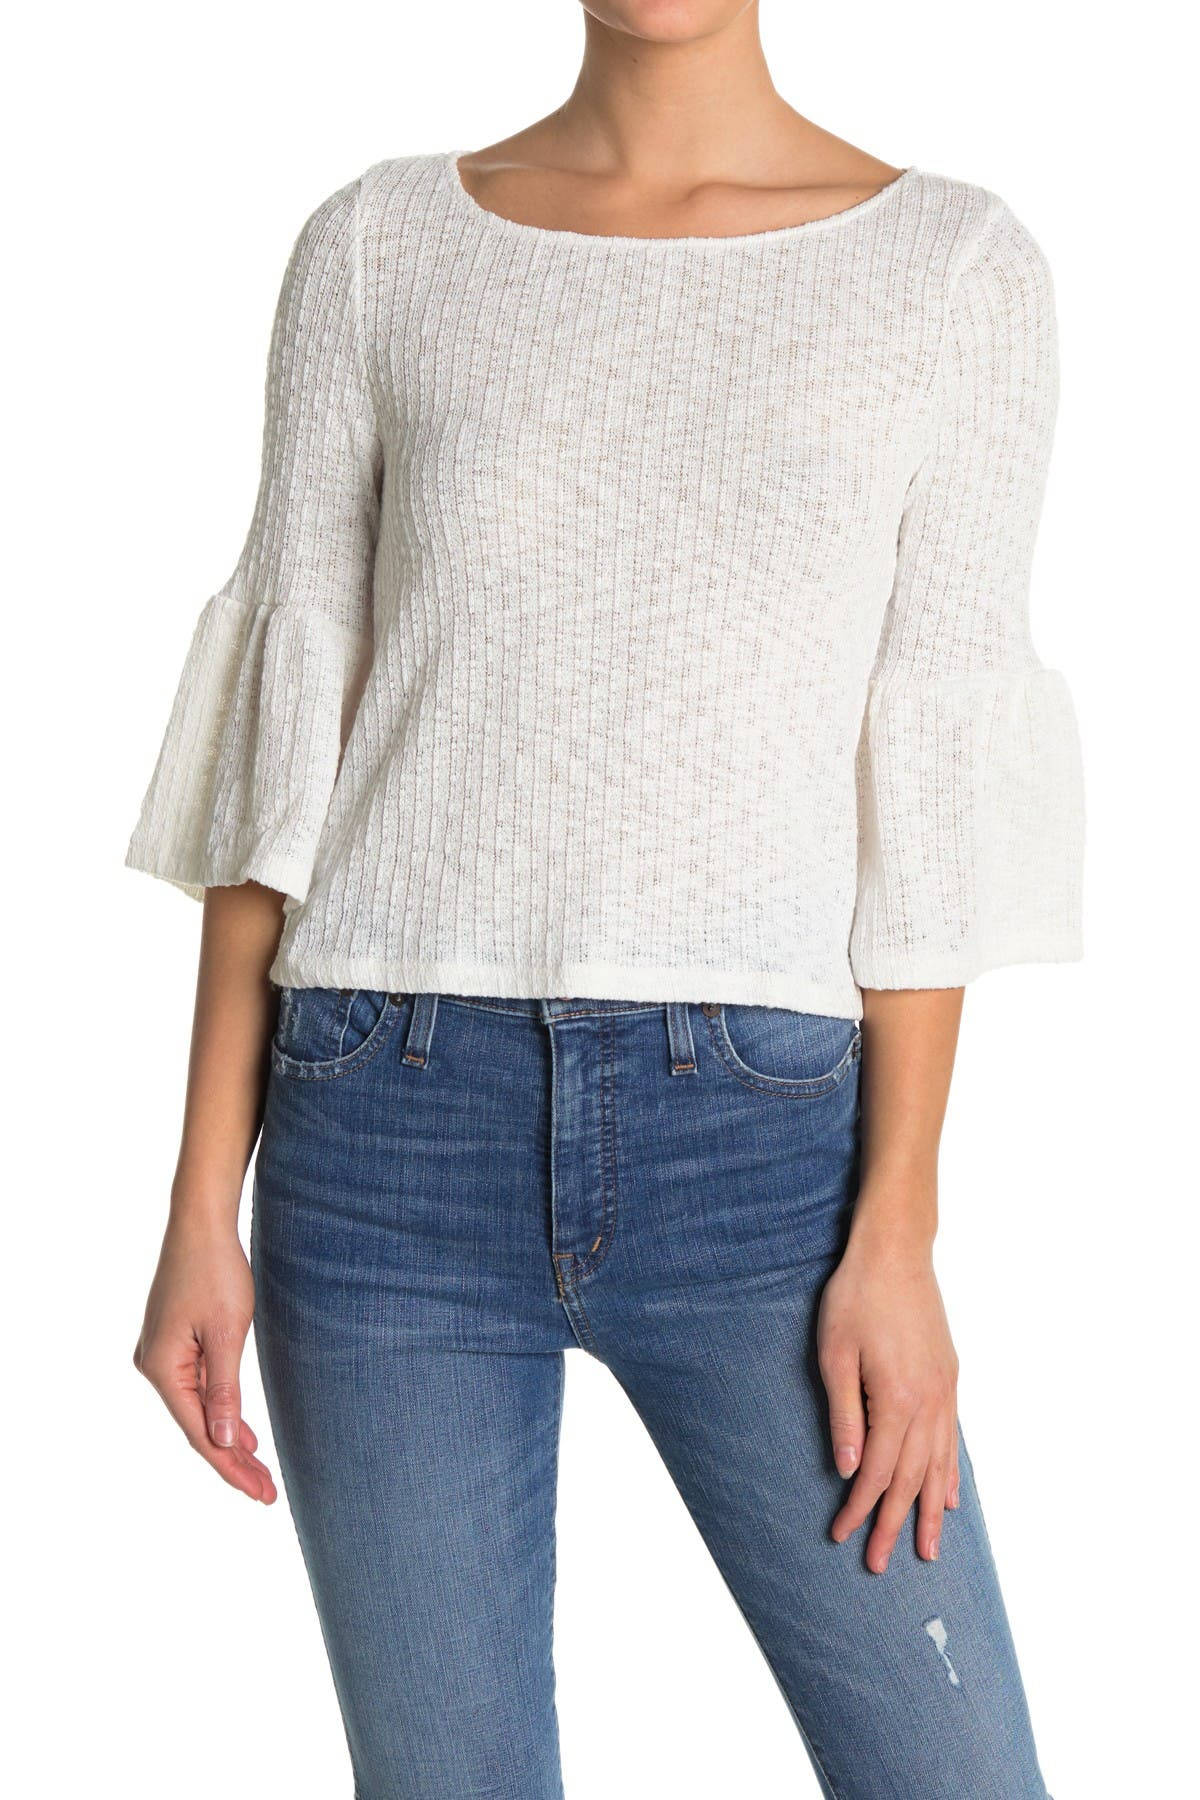 Image of BB Dakota No Substitute Knit Top